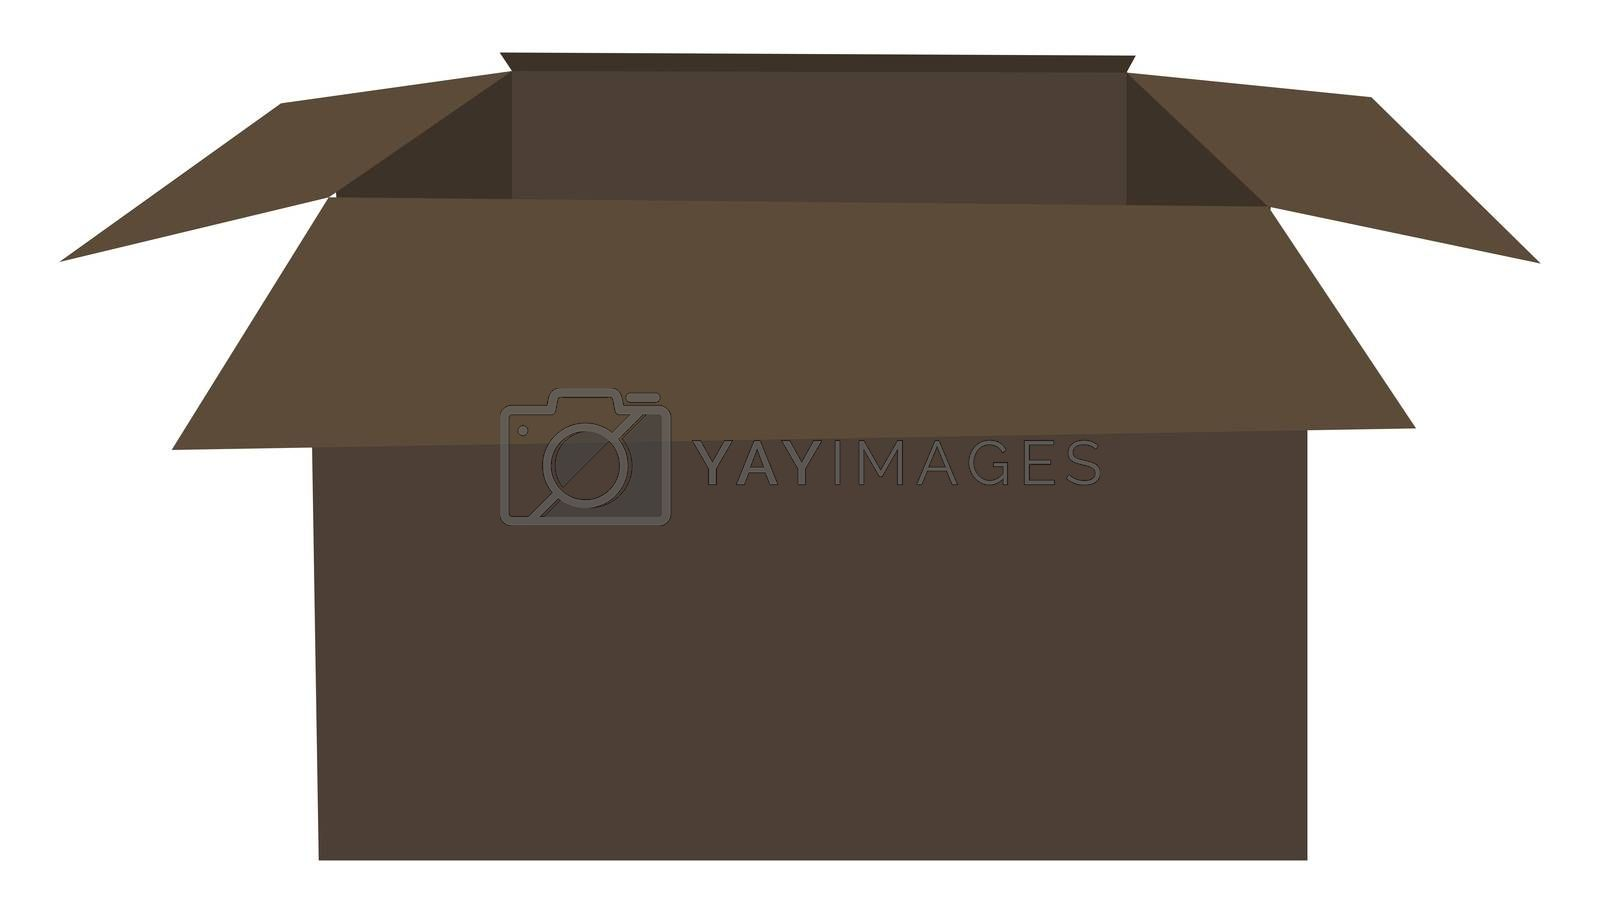 Open carton box, illustration, vector on white background